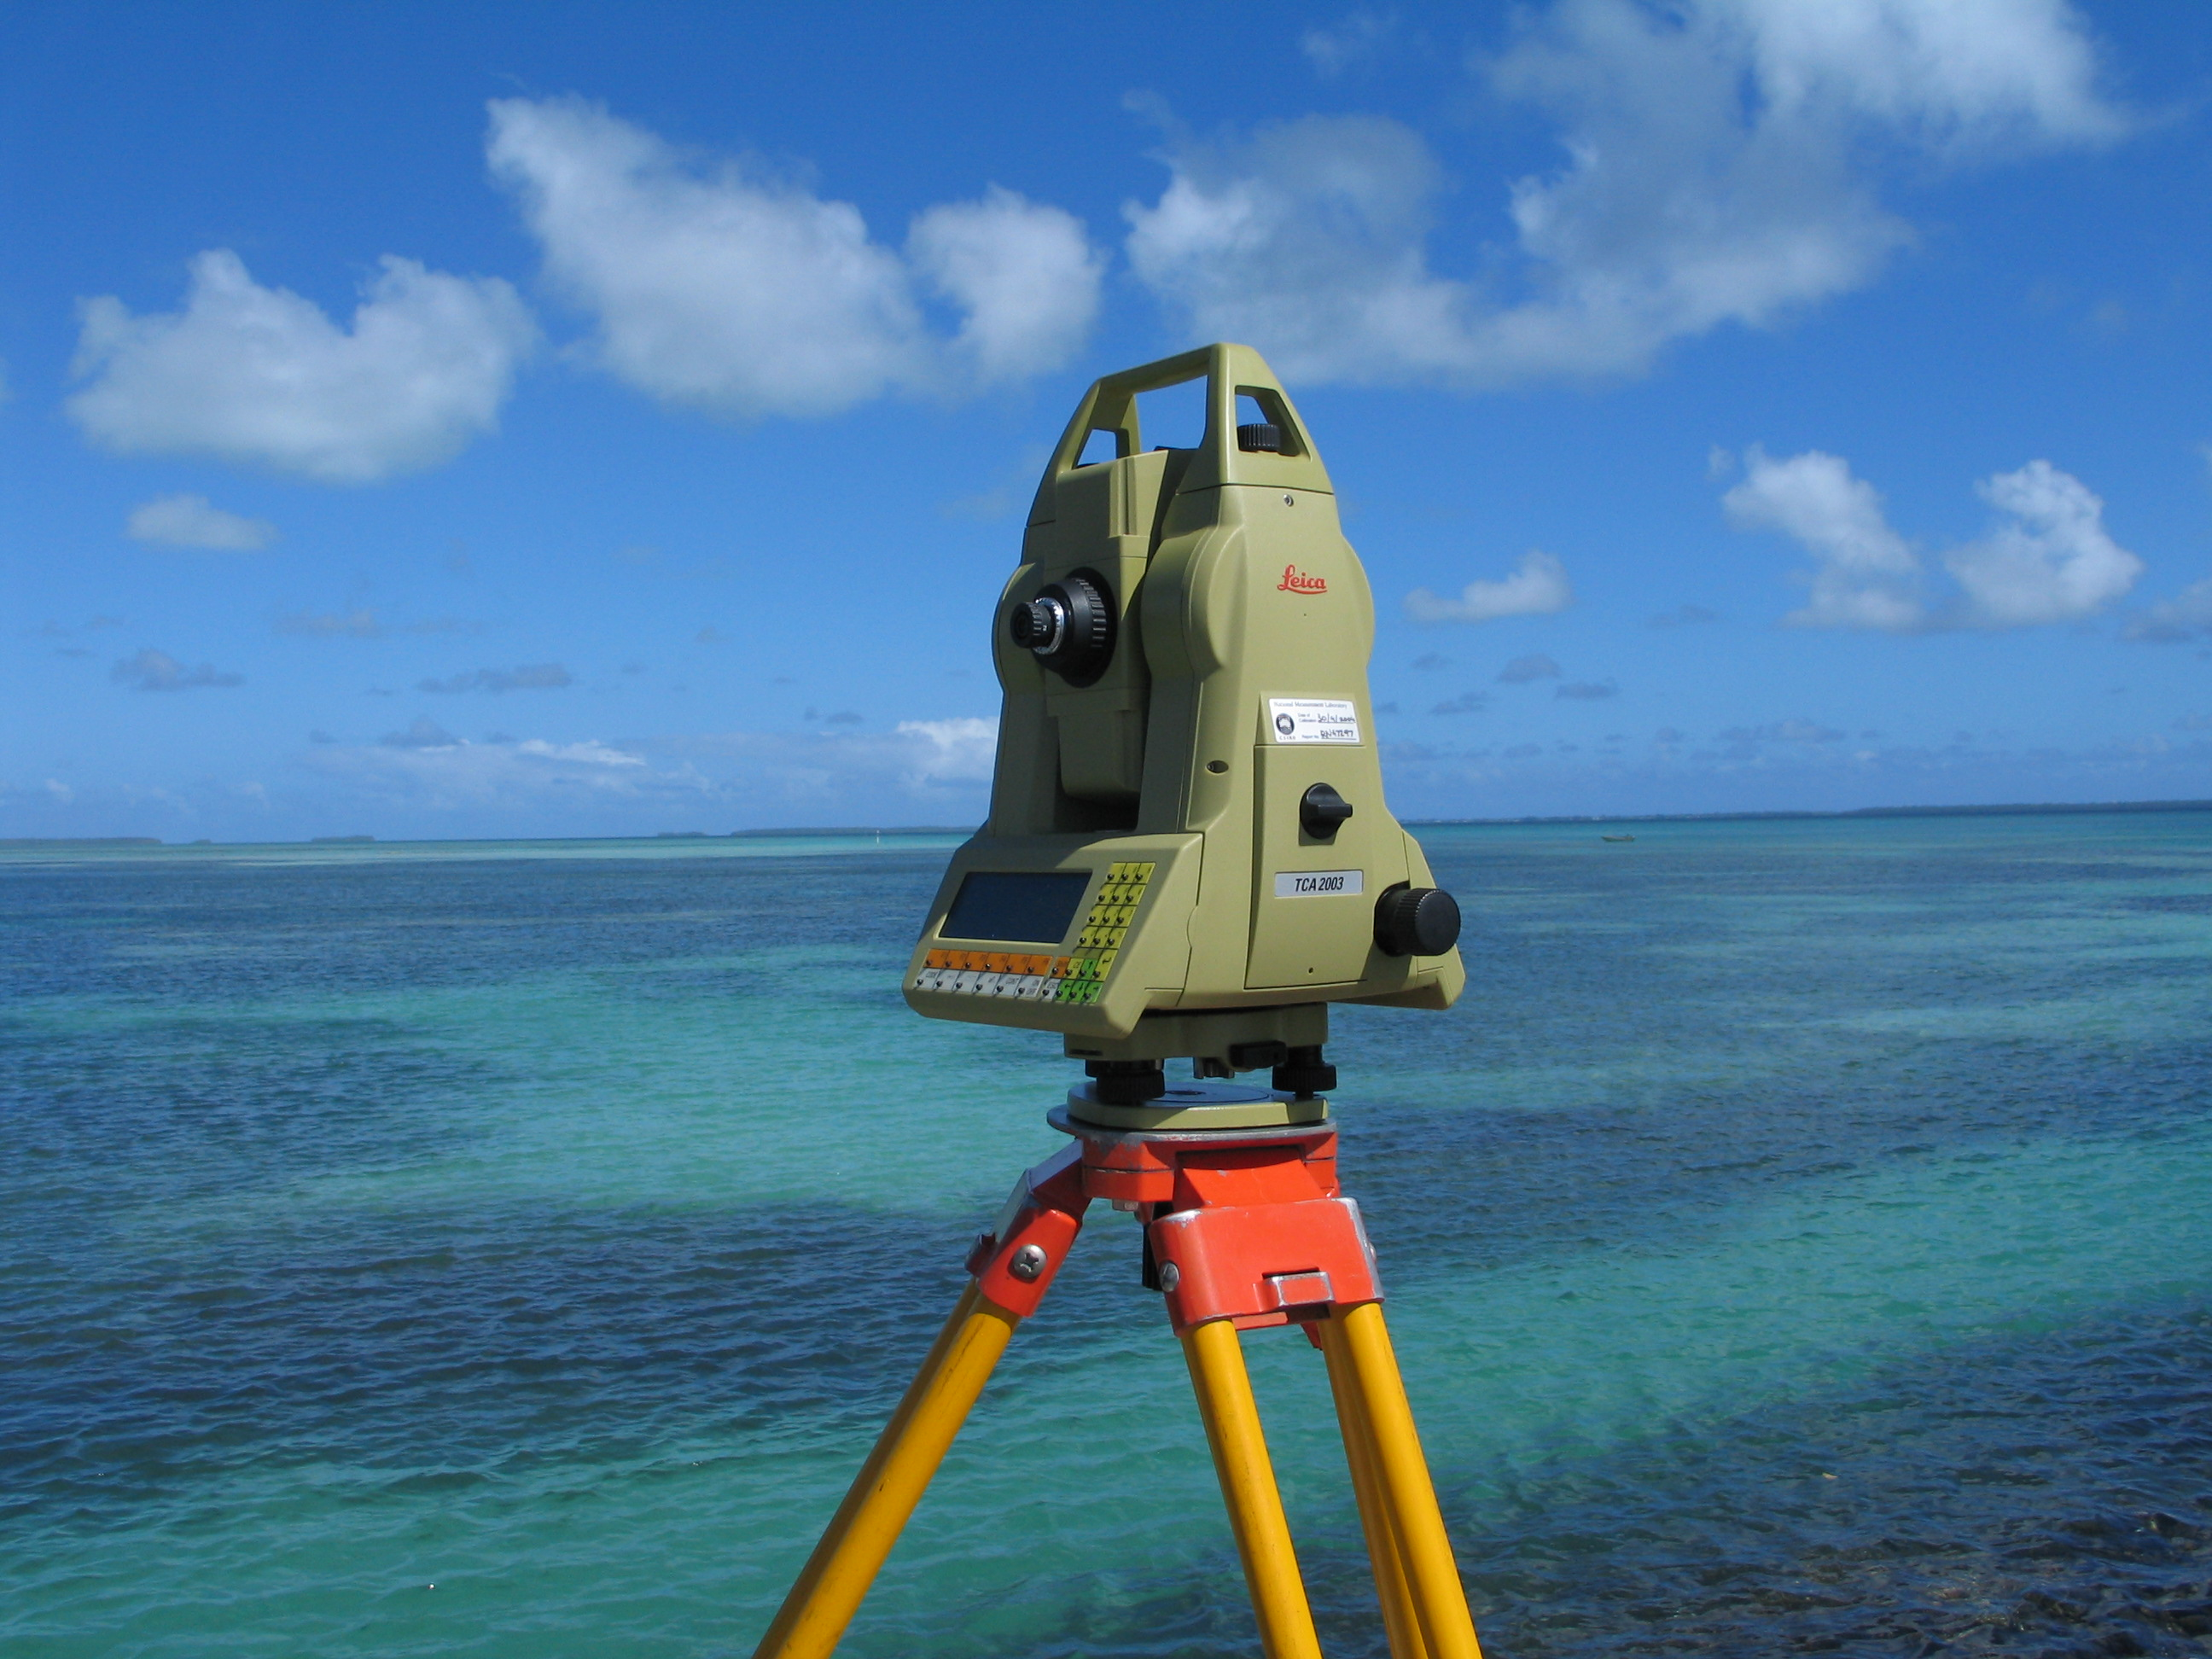 Picture of a modern day total station Theodolite machine, lookng out over an ocean view.